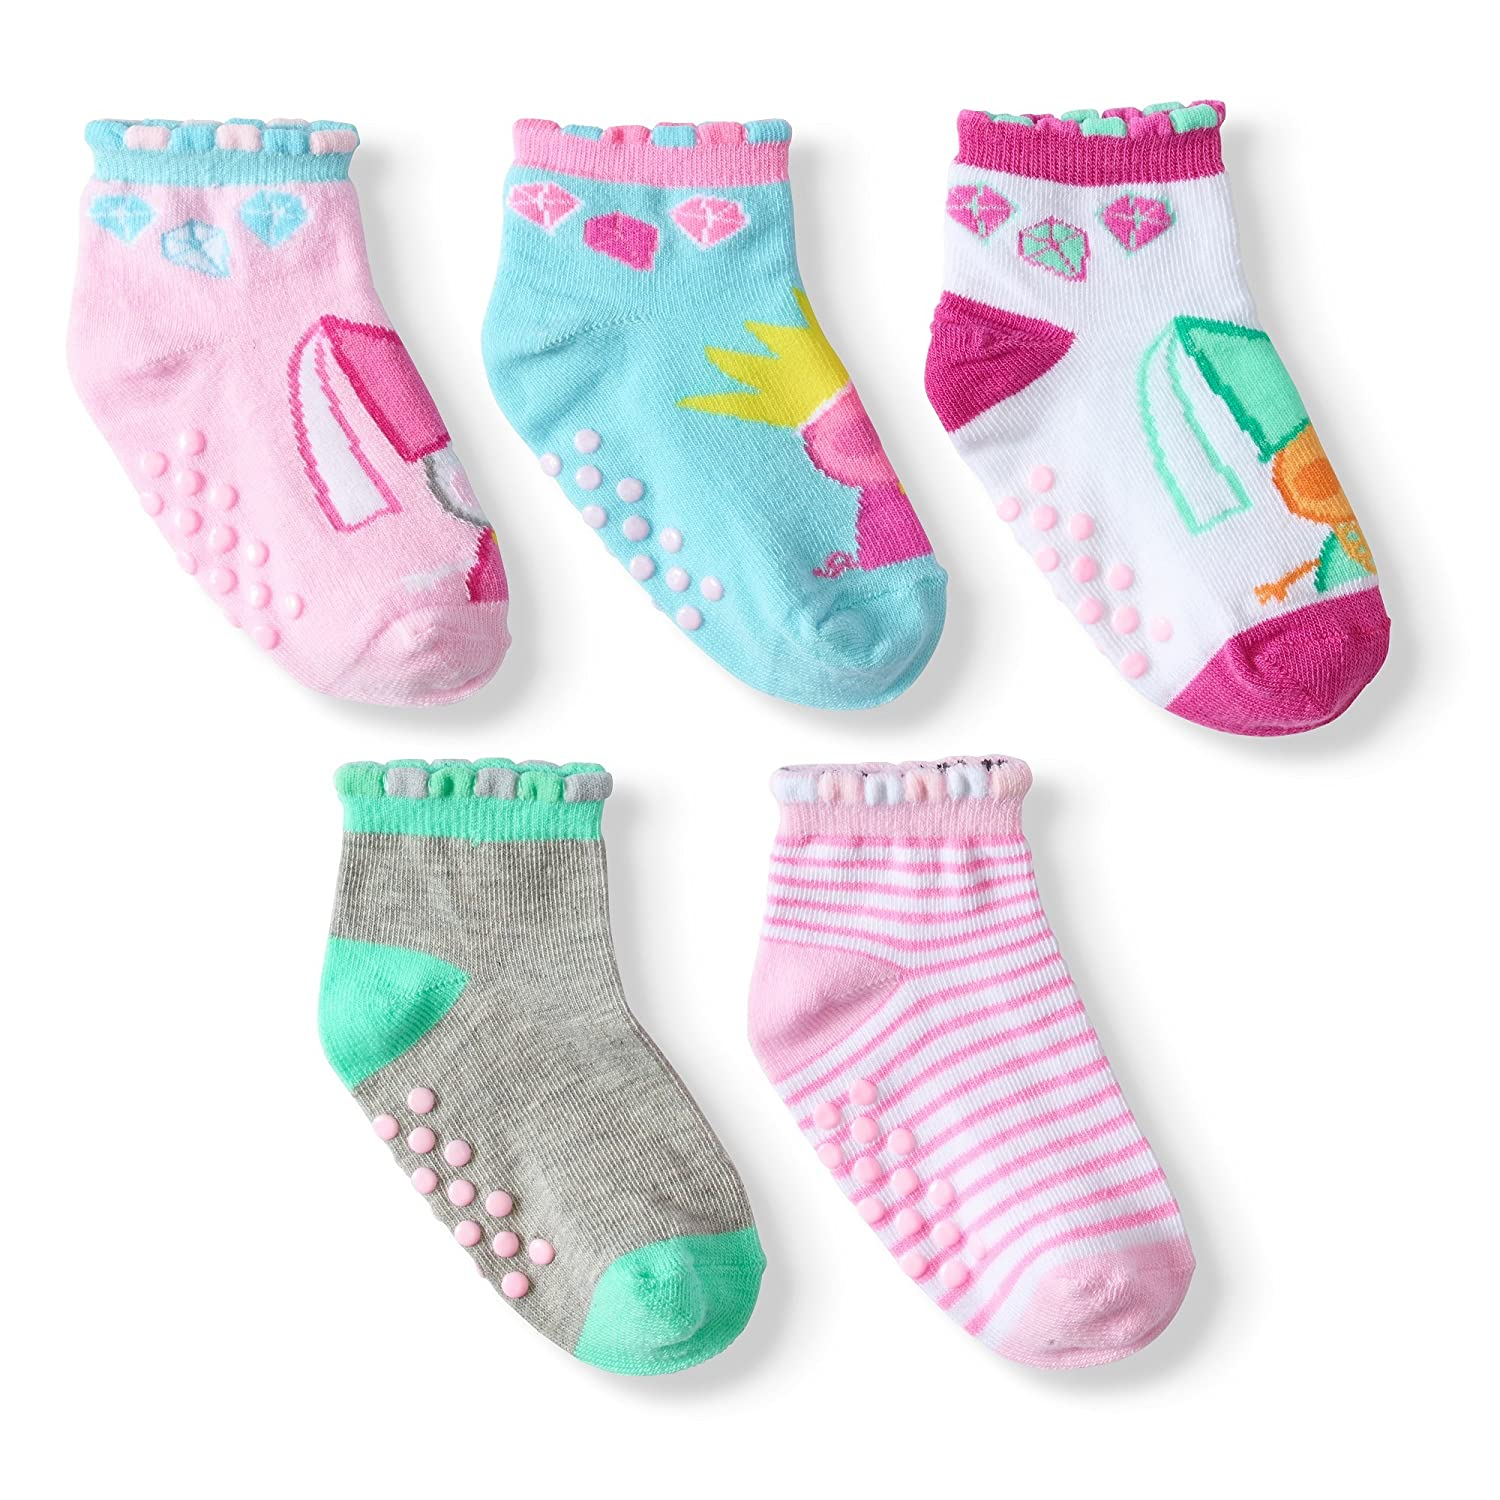 Amazon.com: Queen Peppa Quarter Socks -Baby-Toddler- Girl 5-pack (18-24 MONTS): Clothing